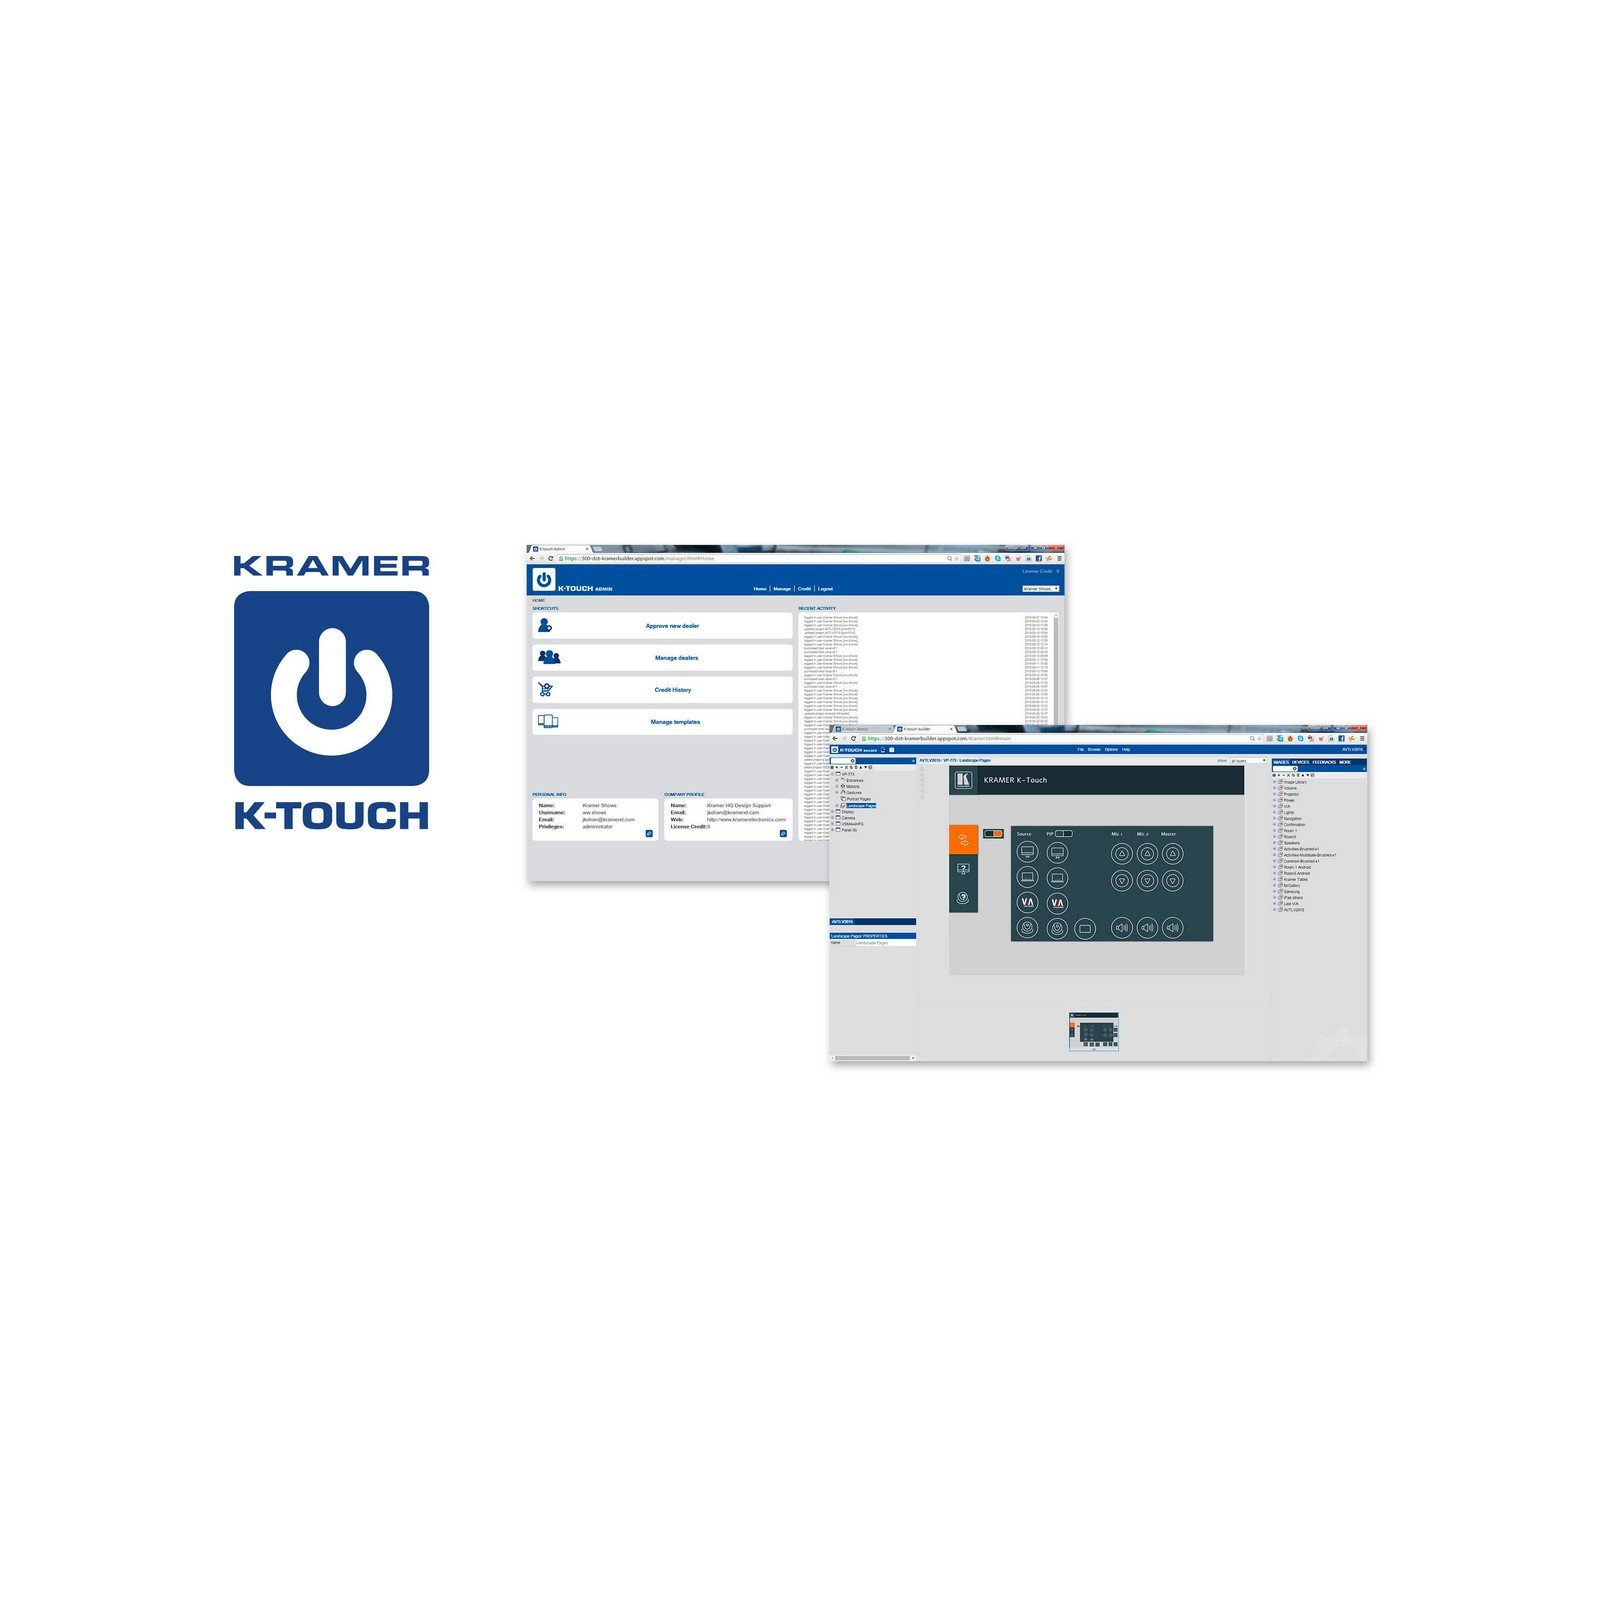 Kramer K-TOUCH ADD PANEL | Cloud iOS Android Room Control Platform 1 Additional Device